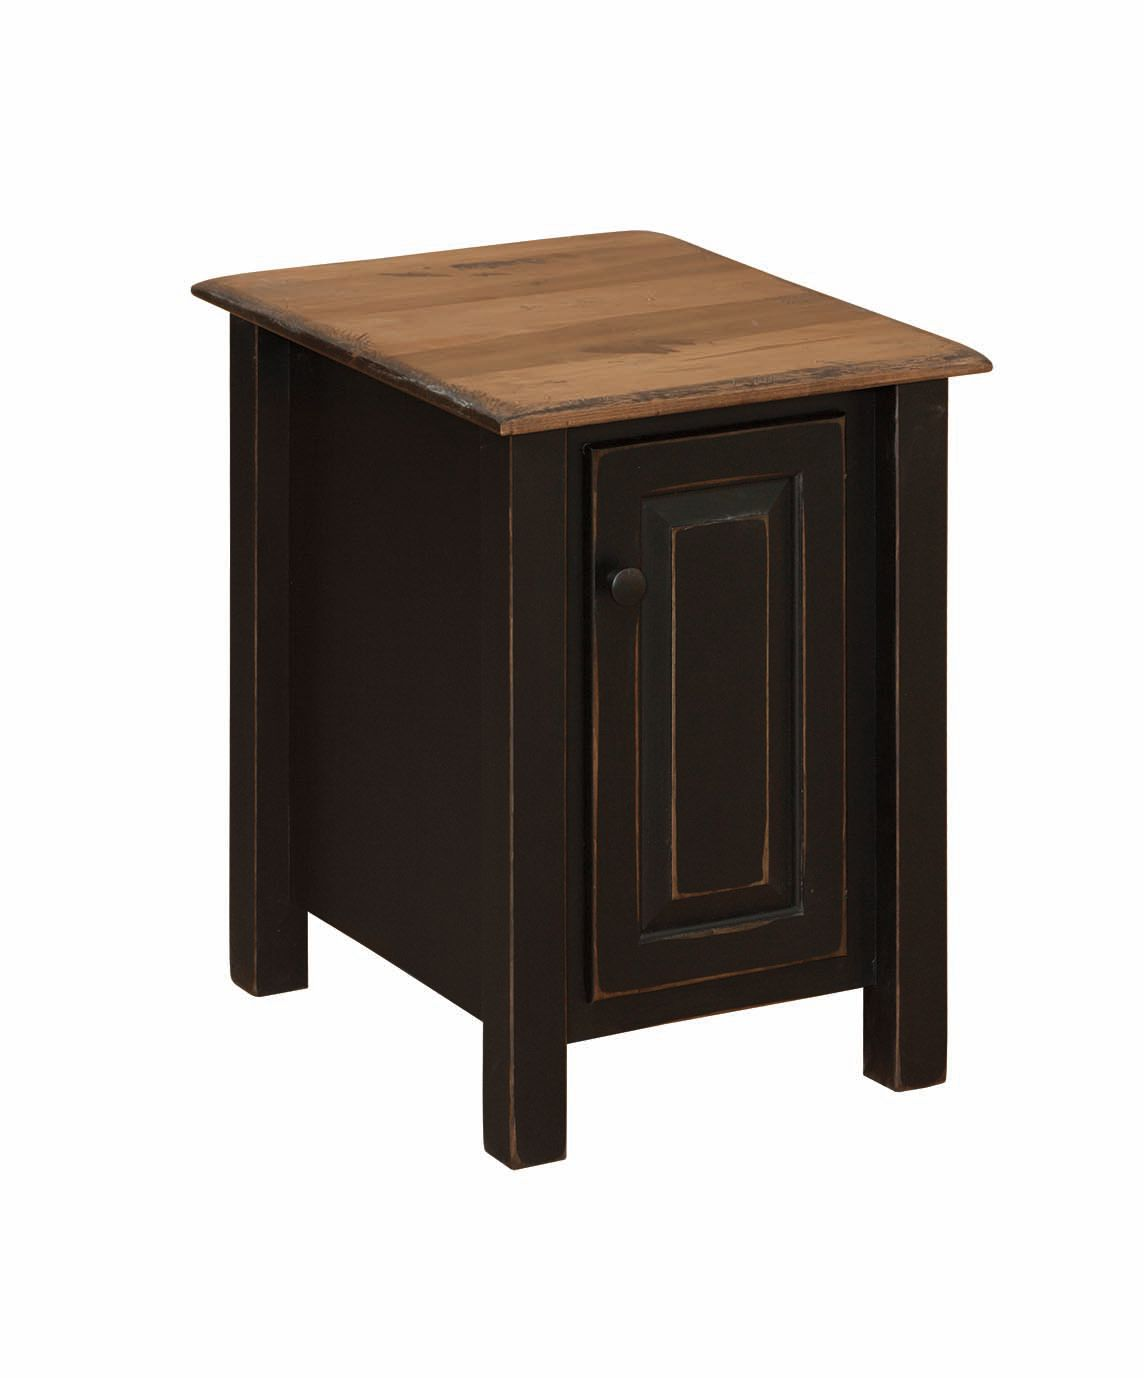 Photo of: FRW Cabinet End Table